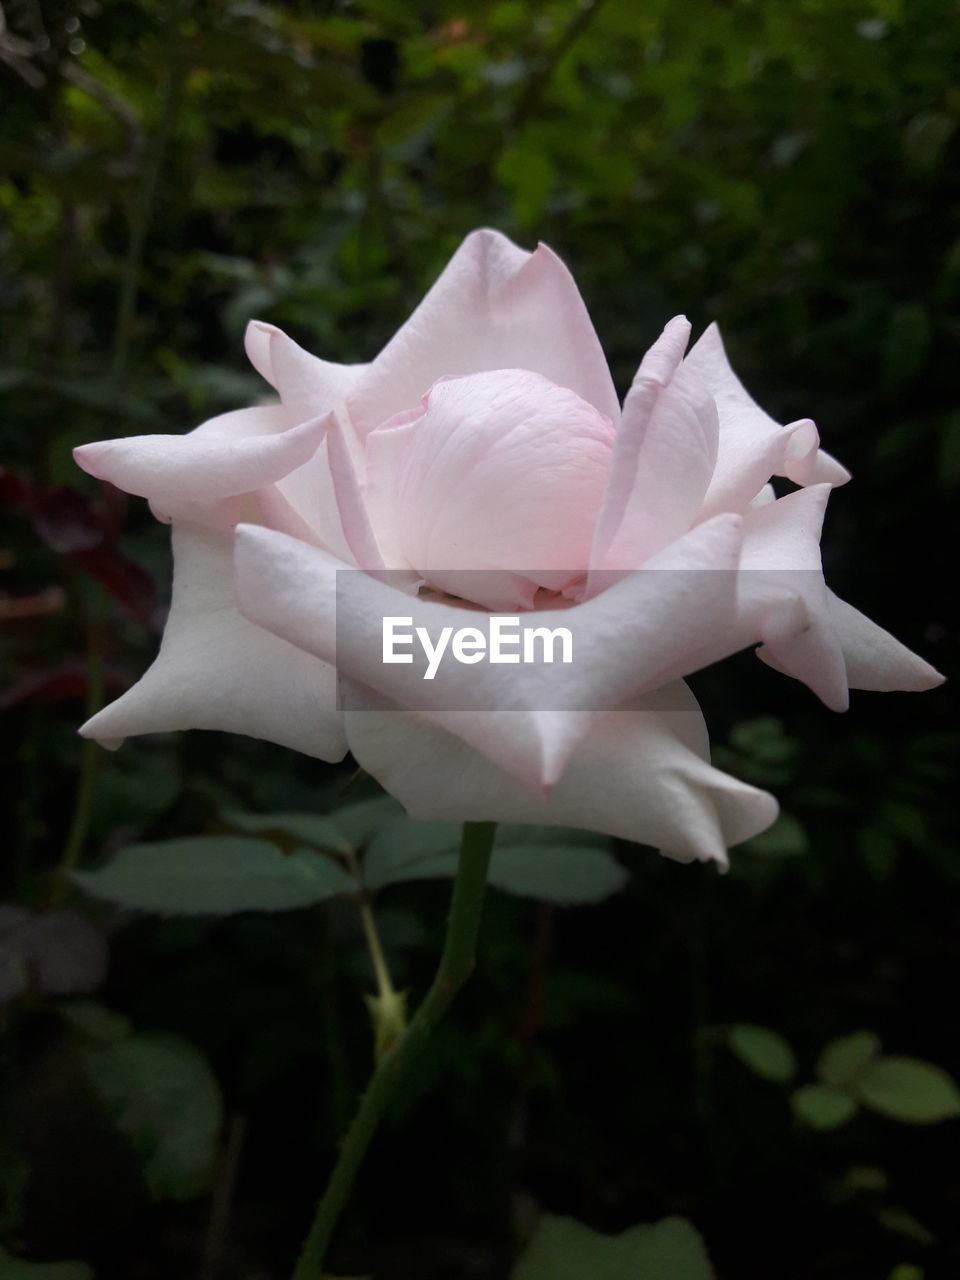 flower, petal, flower head, fragility, nature, beauty in nature, freshness, growth, white color, close-up, plant, rose - flower, blooming, outdoors, pink color, no people, day, focus on foreground